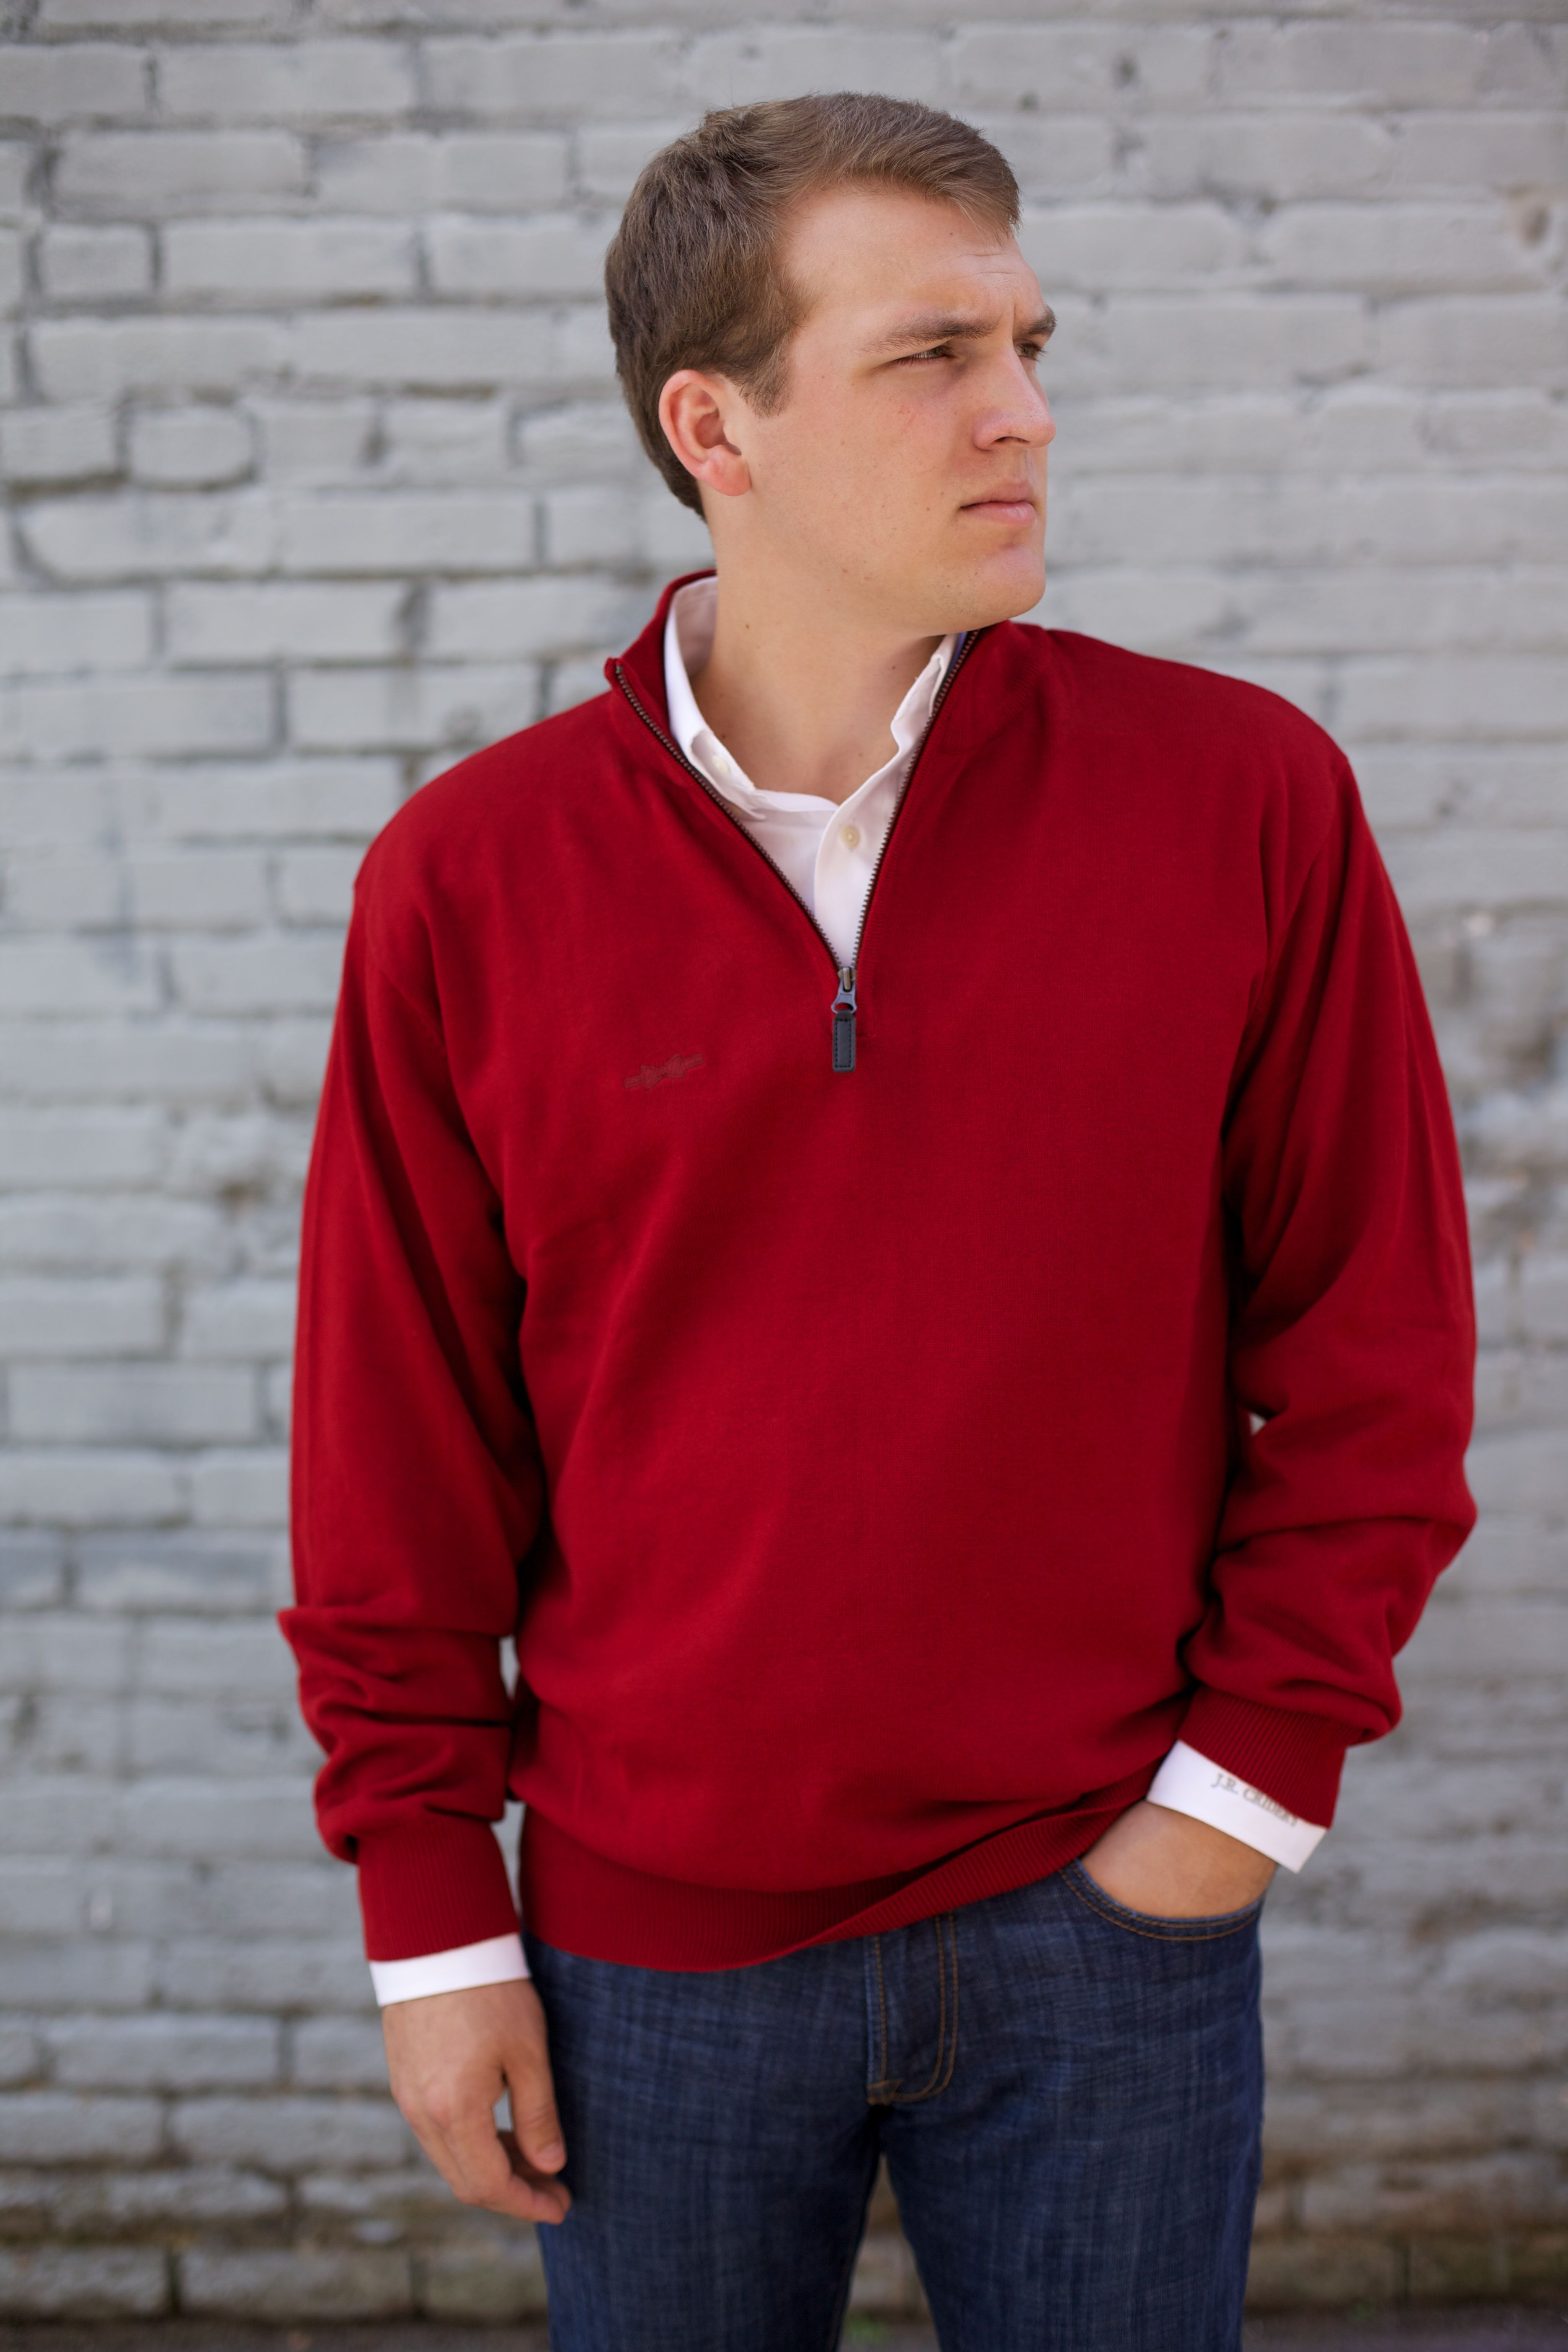 The 1/4 Zip Bow Tie Pullover in Red | Lifestyle | Pinterest | Pullover